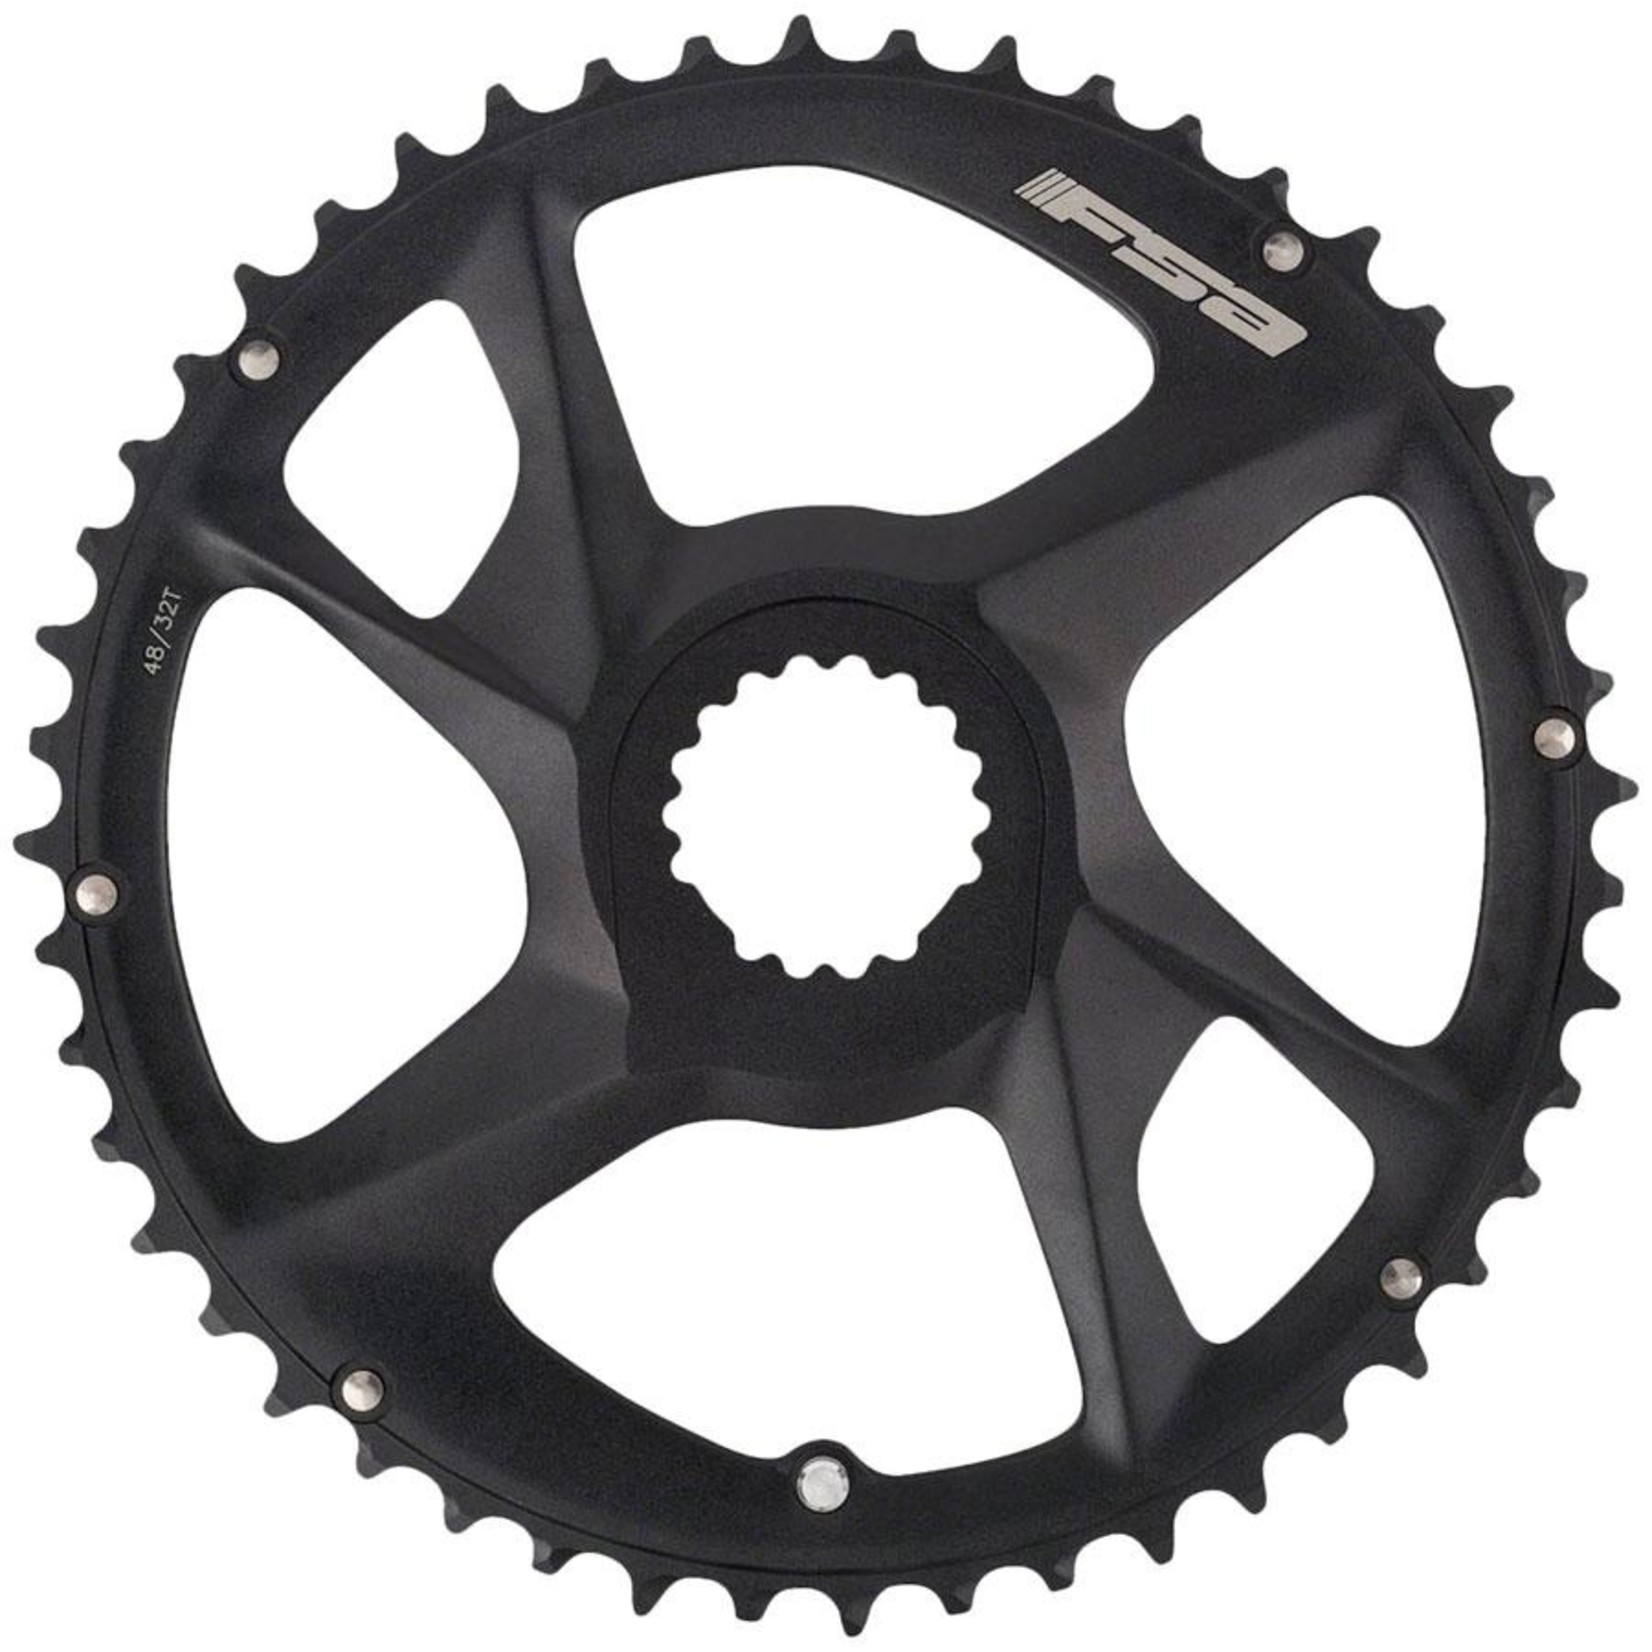 FULL SPEED AHEAD Full Speed Ahead Energy Modular Direct Mount Chainring - 48t Outer Ring, FSA Direct Mount, For use with 32t Inner Ring, Black